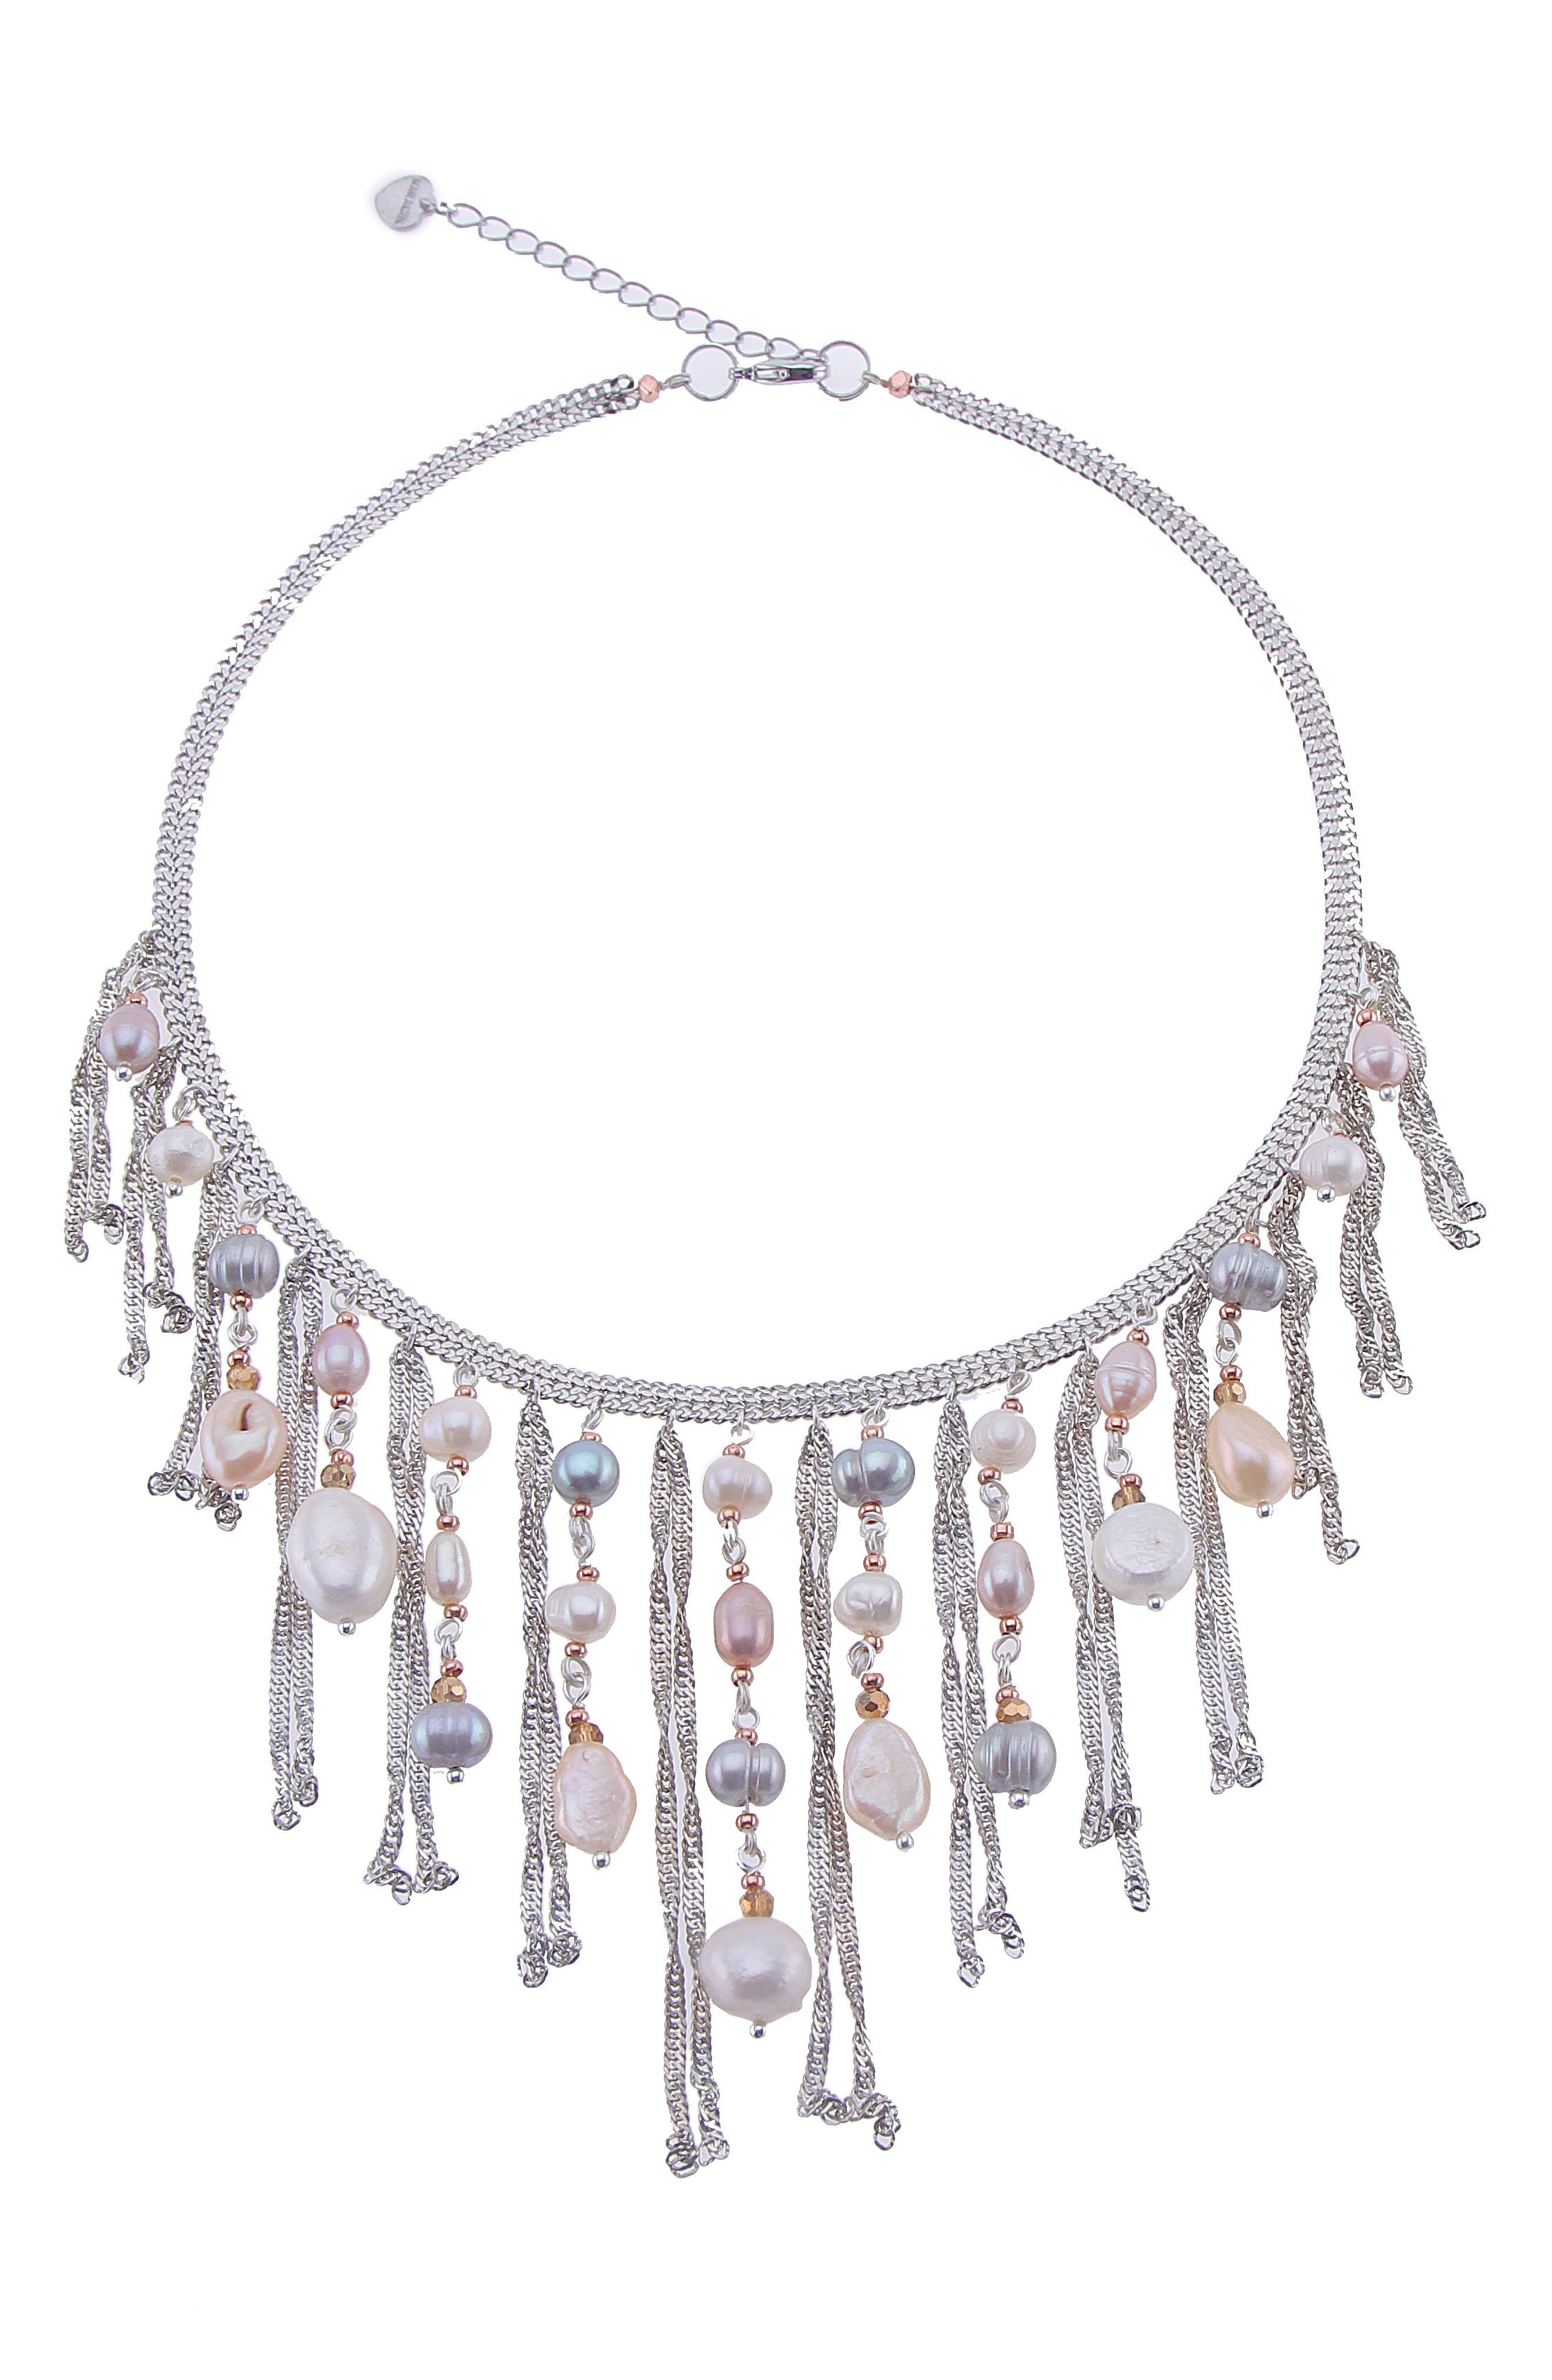 Freshwater Pearl & Chain Fringe Bib Necklace,                         Main,                         color, White